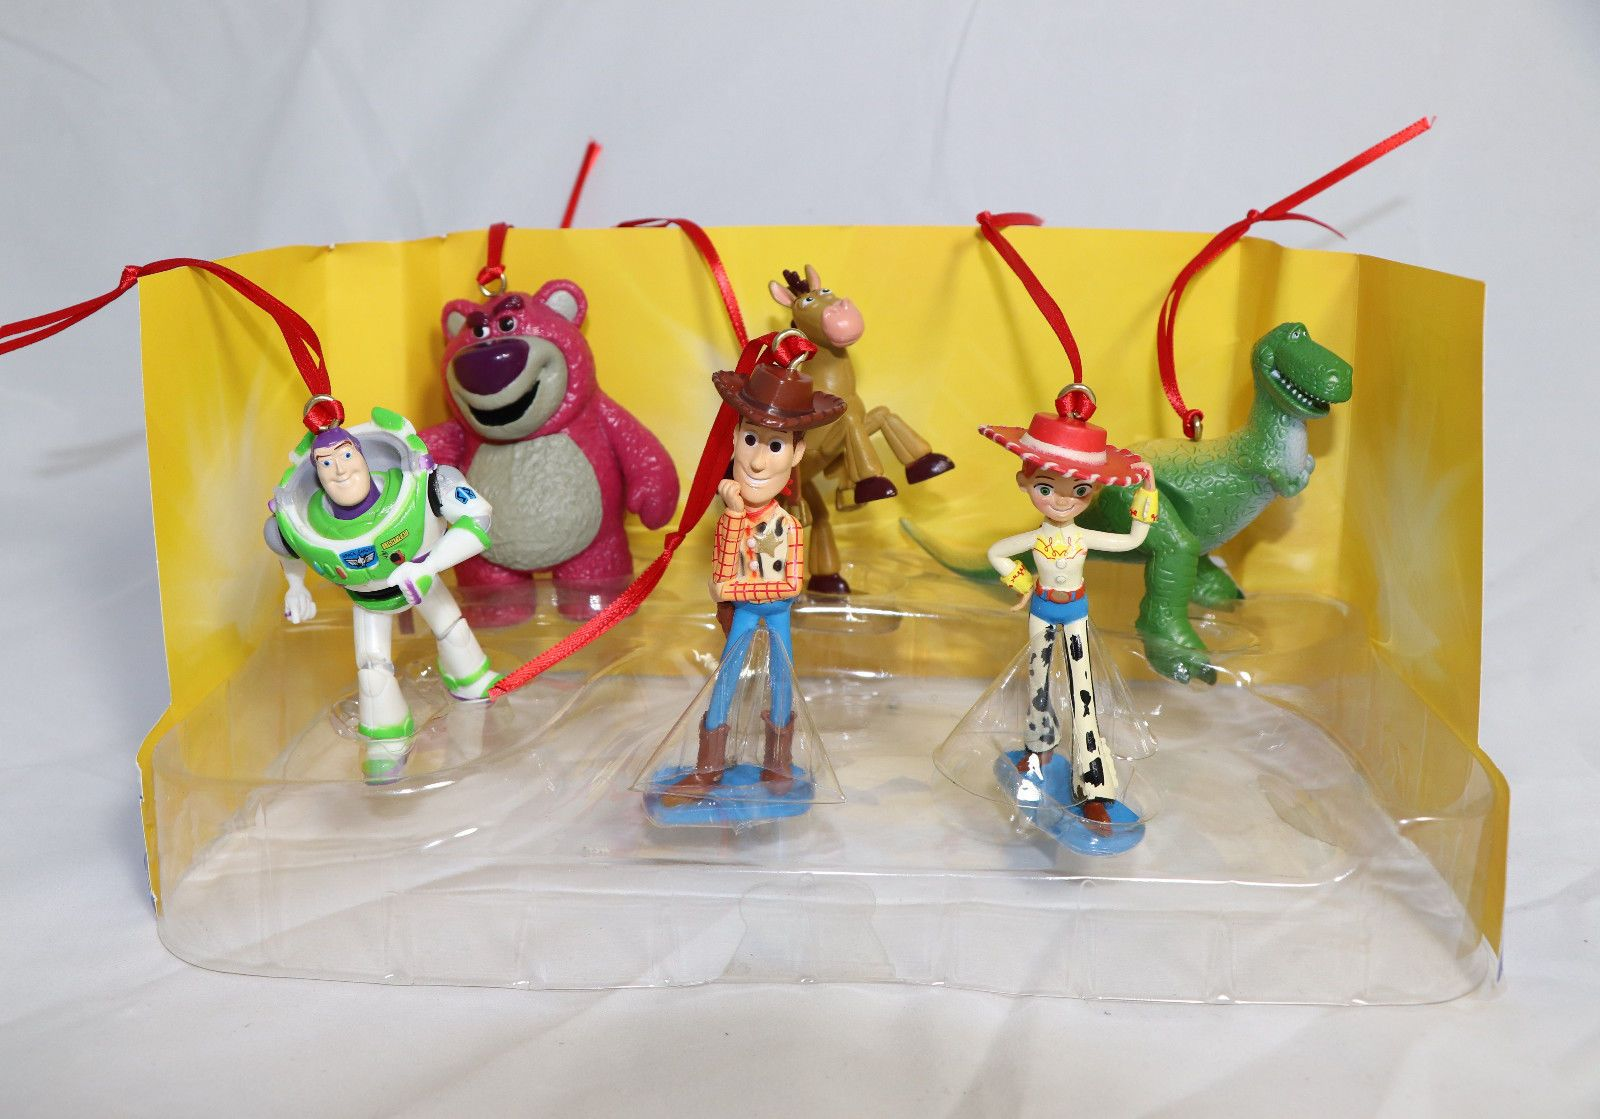 Disney Toy Story Christmas Ornaments 6pc Set Buzz Woody Jessie Bullseye Rex Disney Toys Disney Gifts Pixar Toys